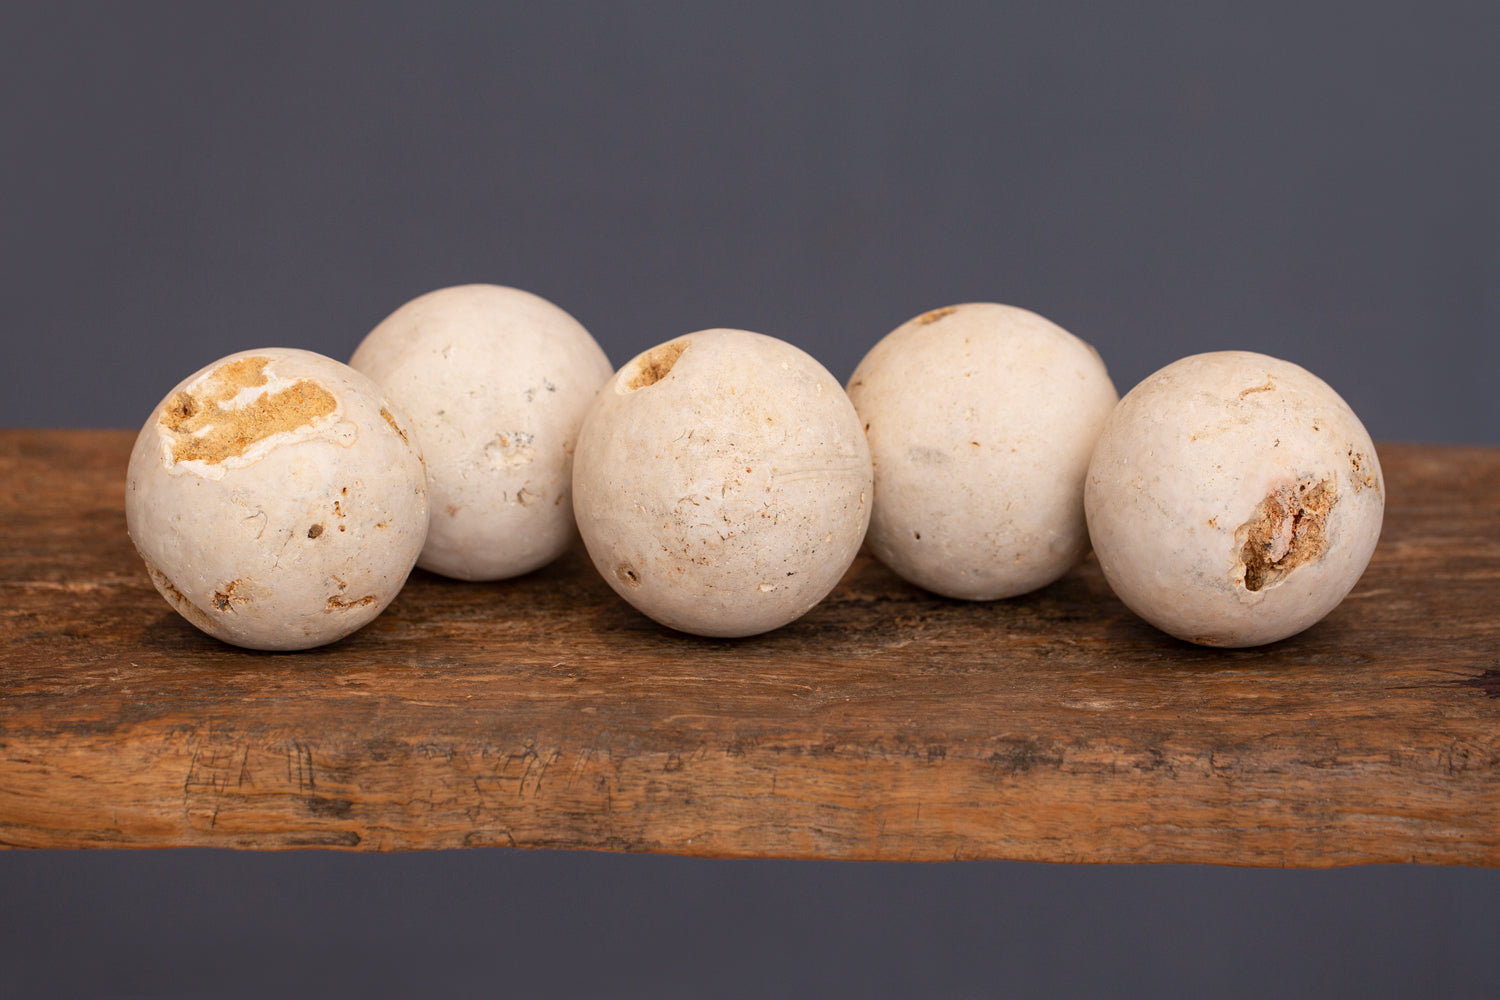 Small Size Light Coloured Hard Limestone Spheres